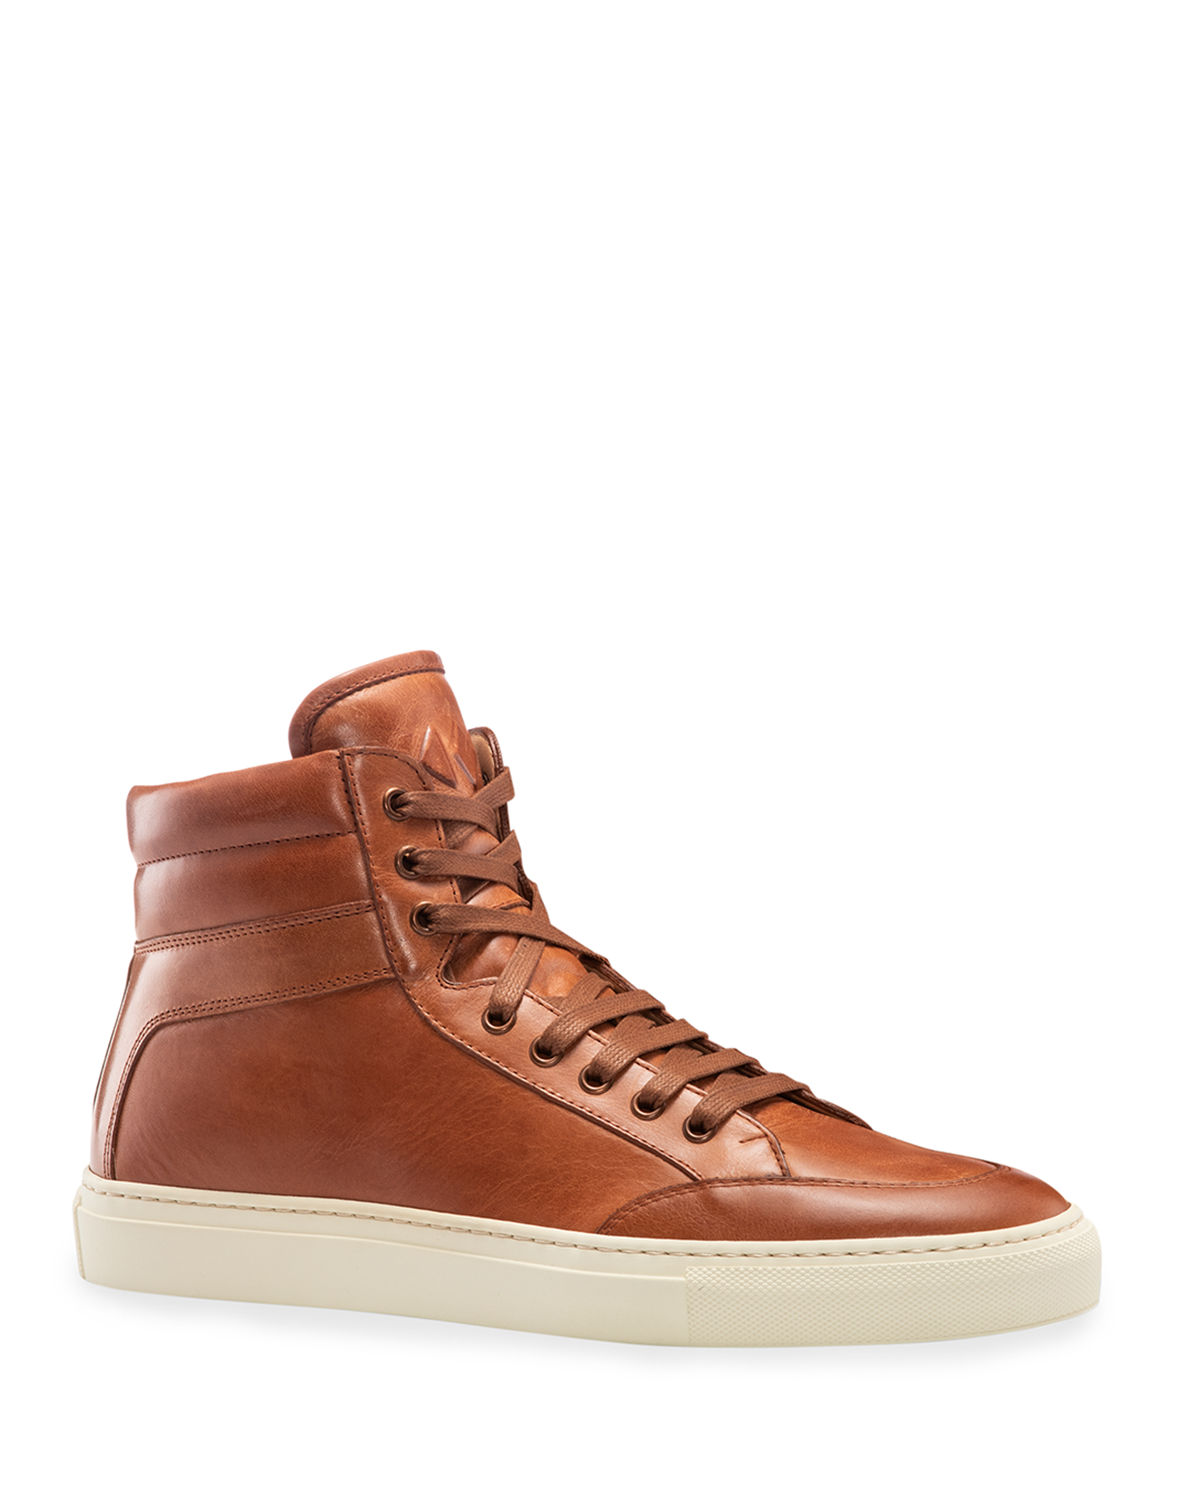 Primo Leather High-Top Sneakers